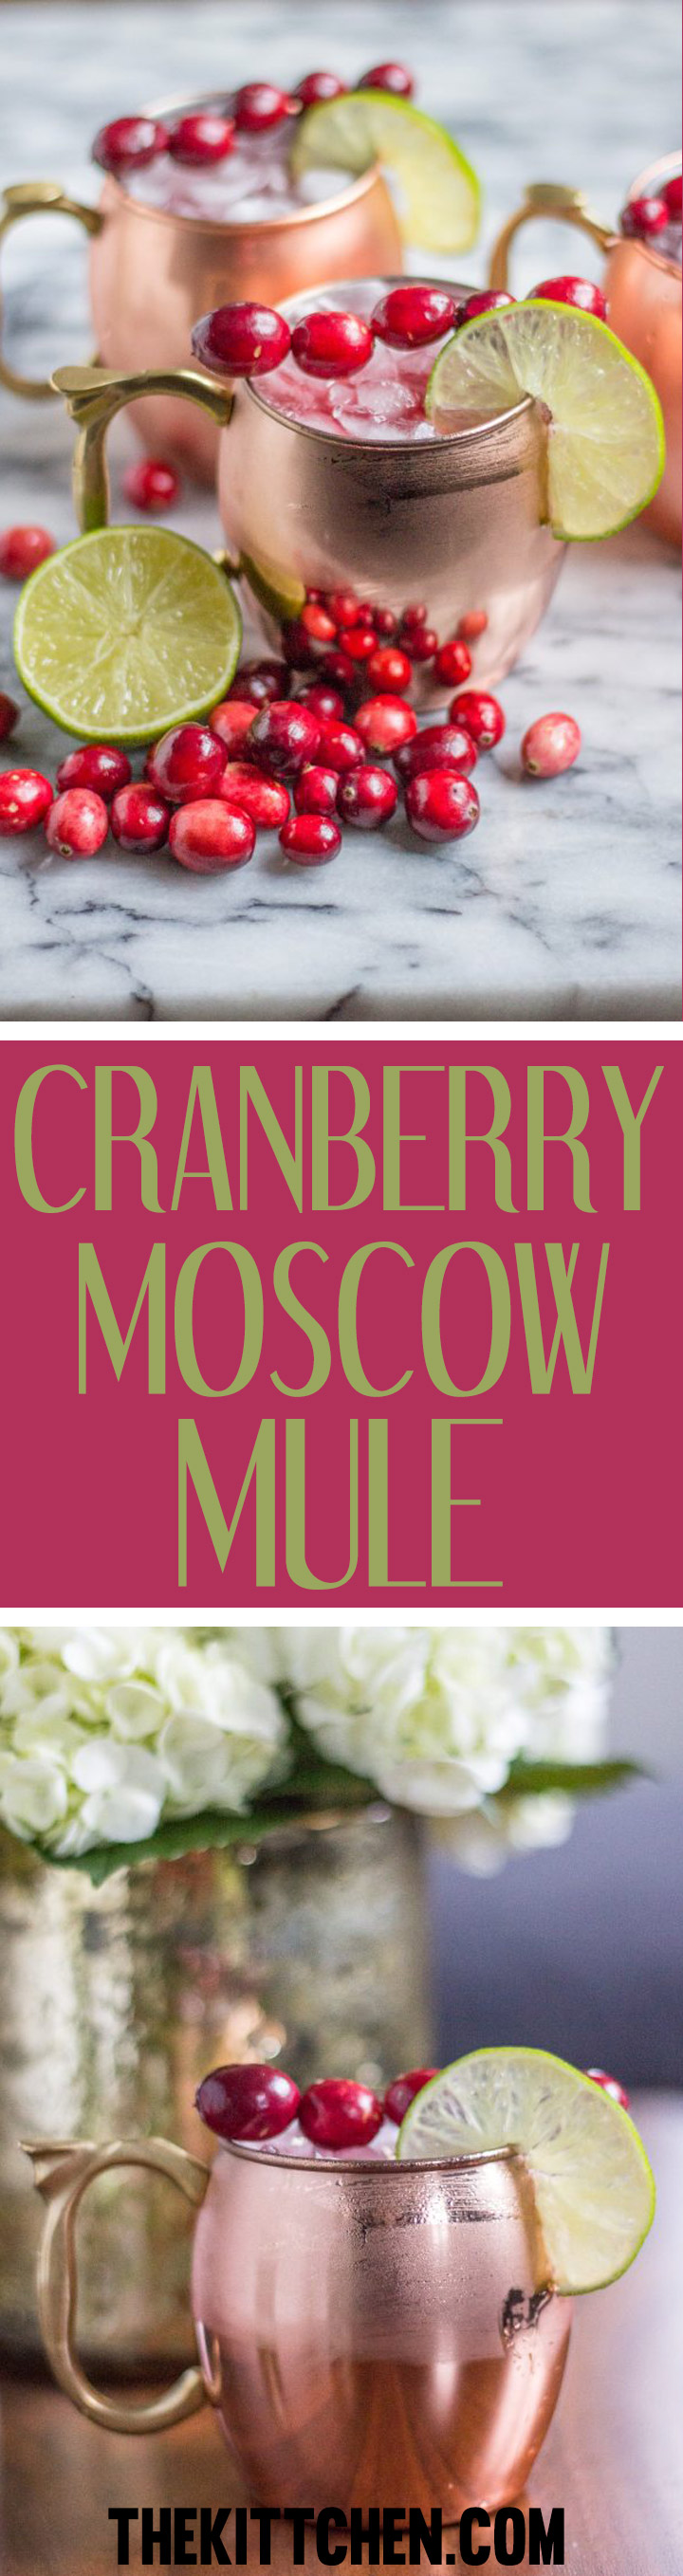 Cranberry Moscow Mule Recipe - This Cranberry Moscow Mule is perfectly on trend and festive!